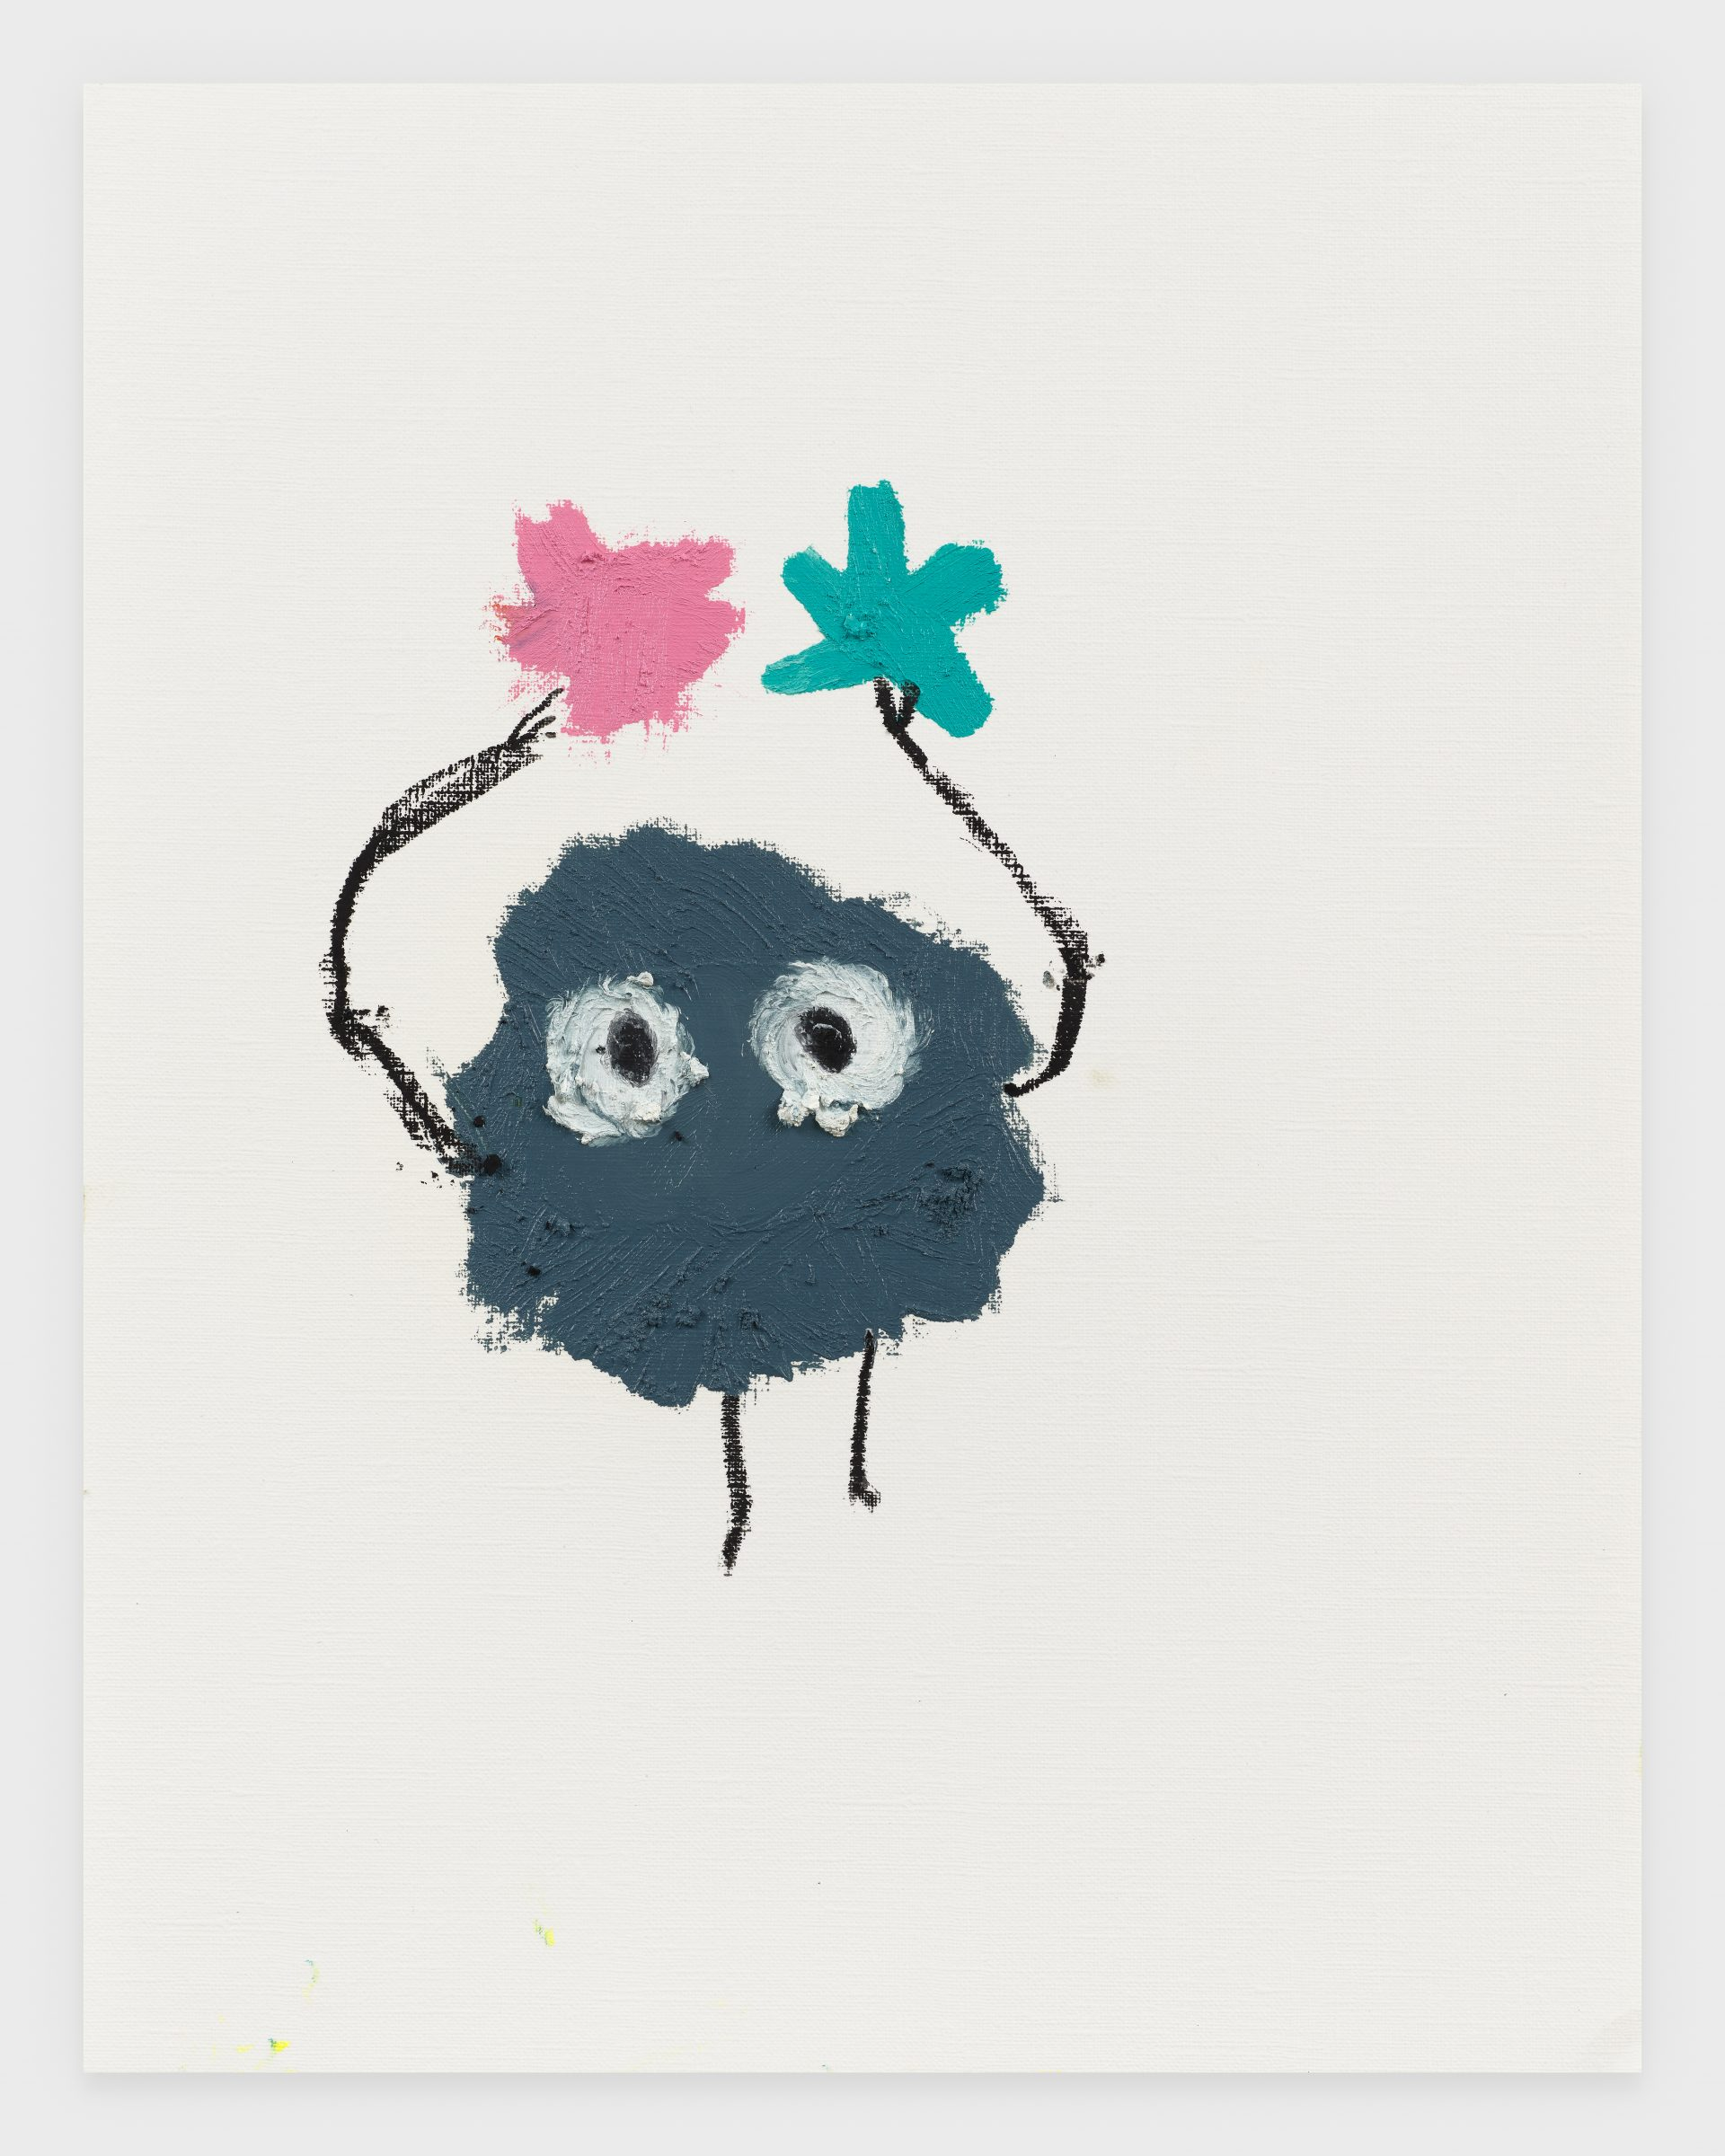 Soot Sprite, 2020, Oil stick on archival paper, 11 x 14 inches